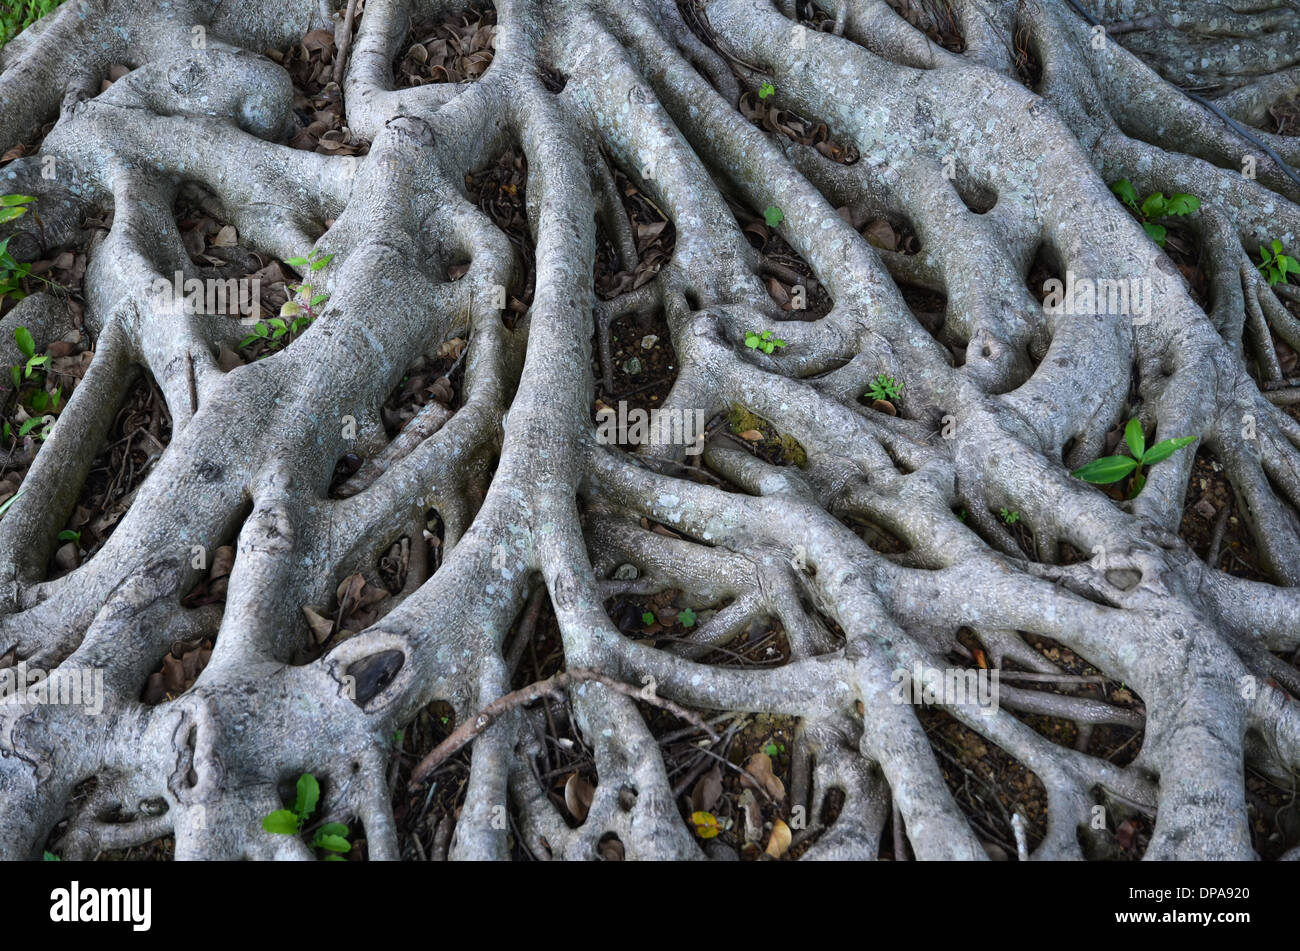 Network of growing wooden roots on ground - Stock Image